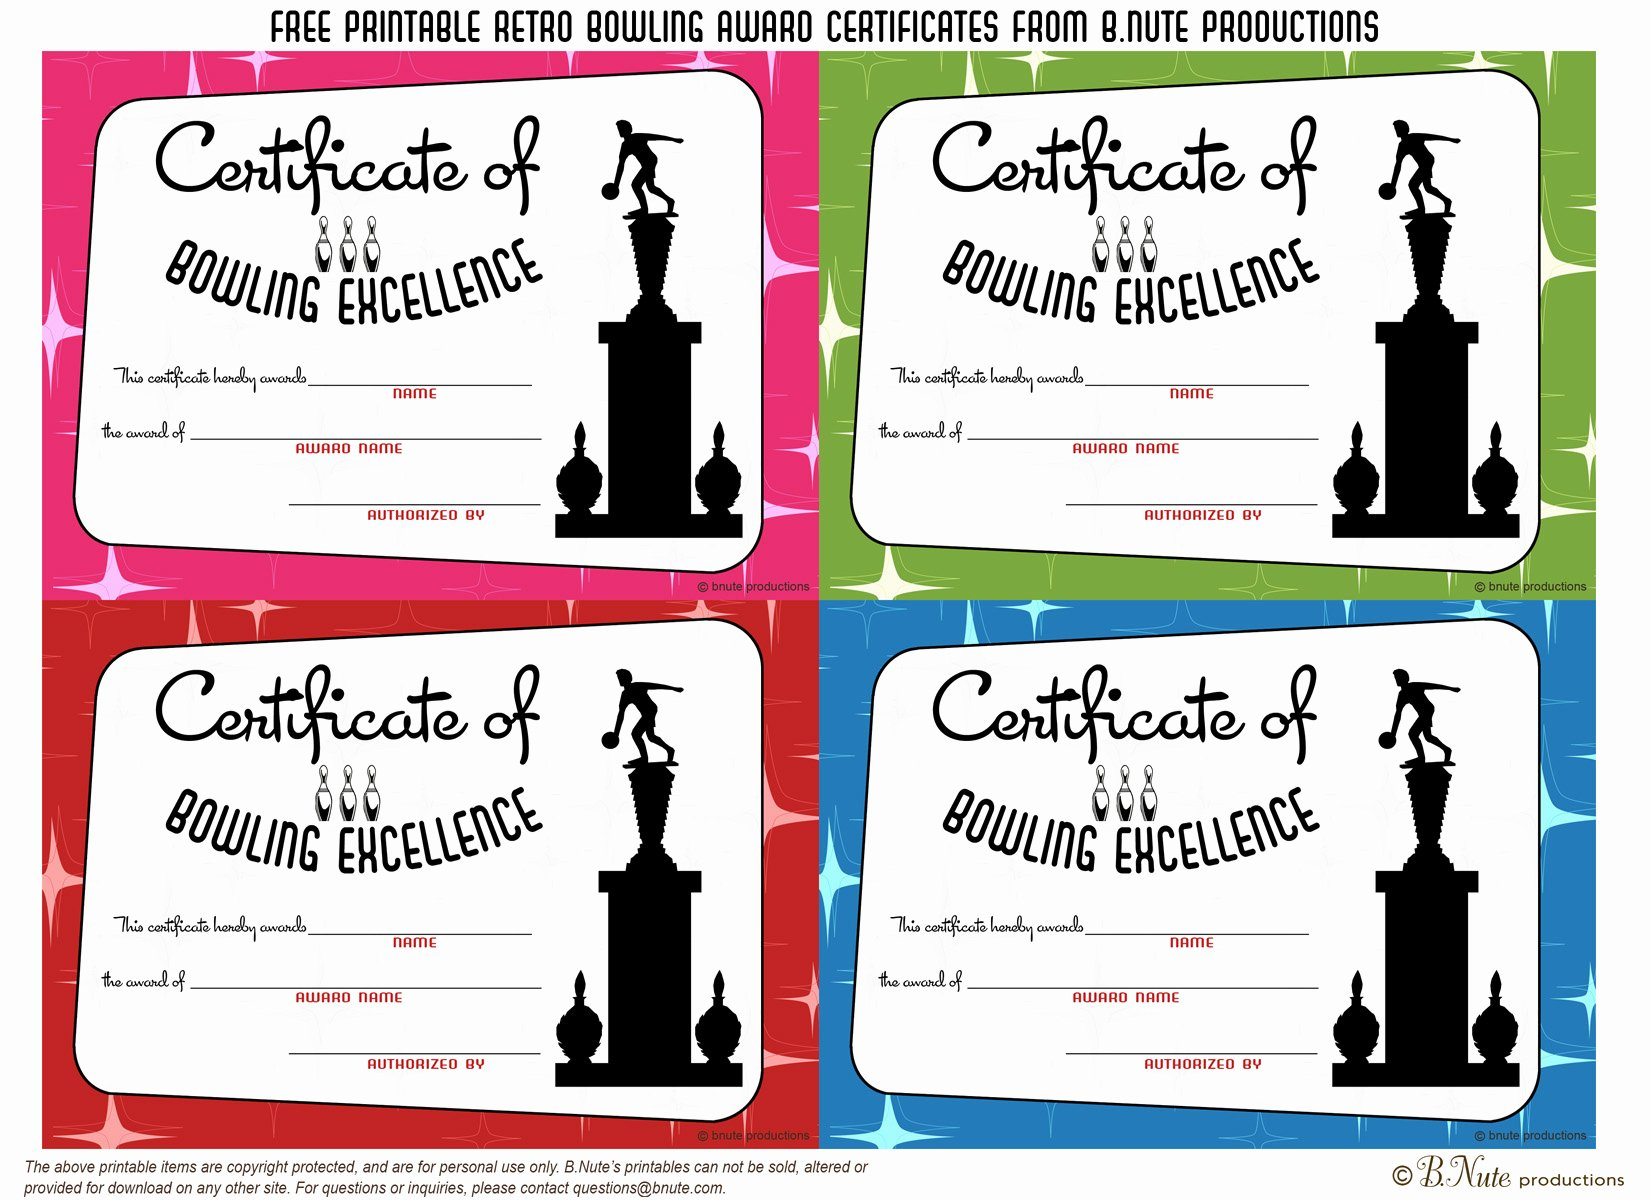 Funny Bowling Award Categories Elegant Bnute Productions Free Printable Bowling Award Certificates